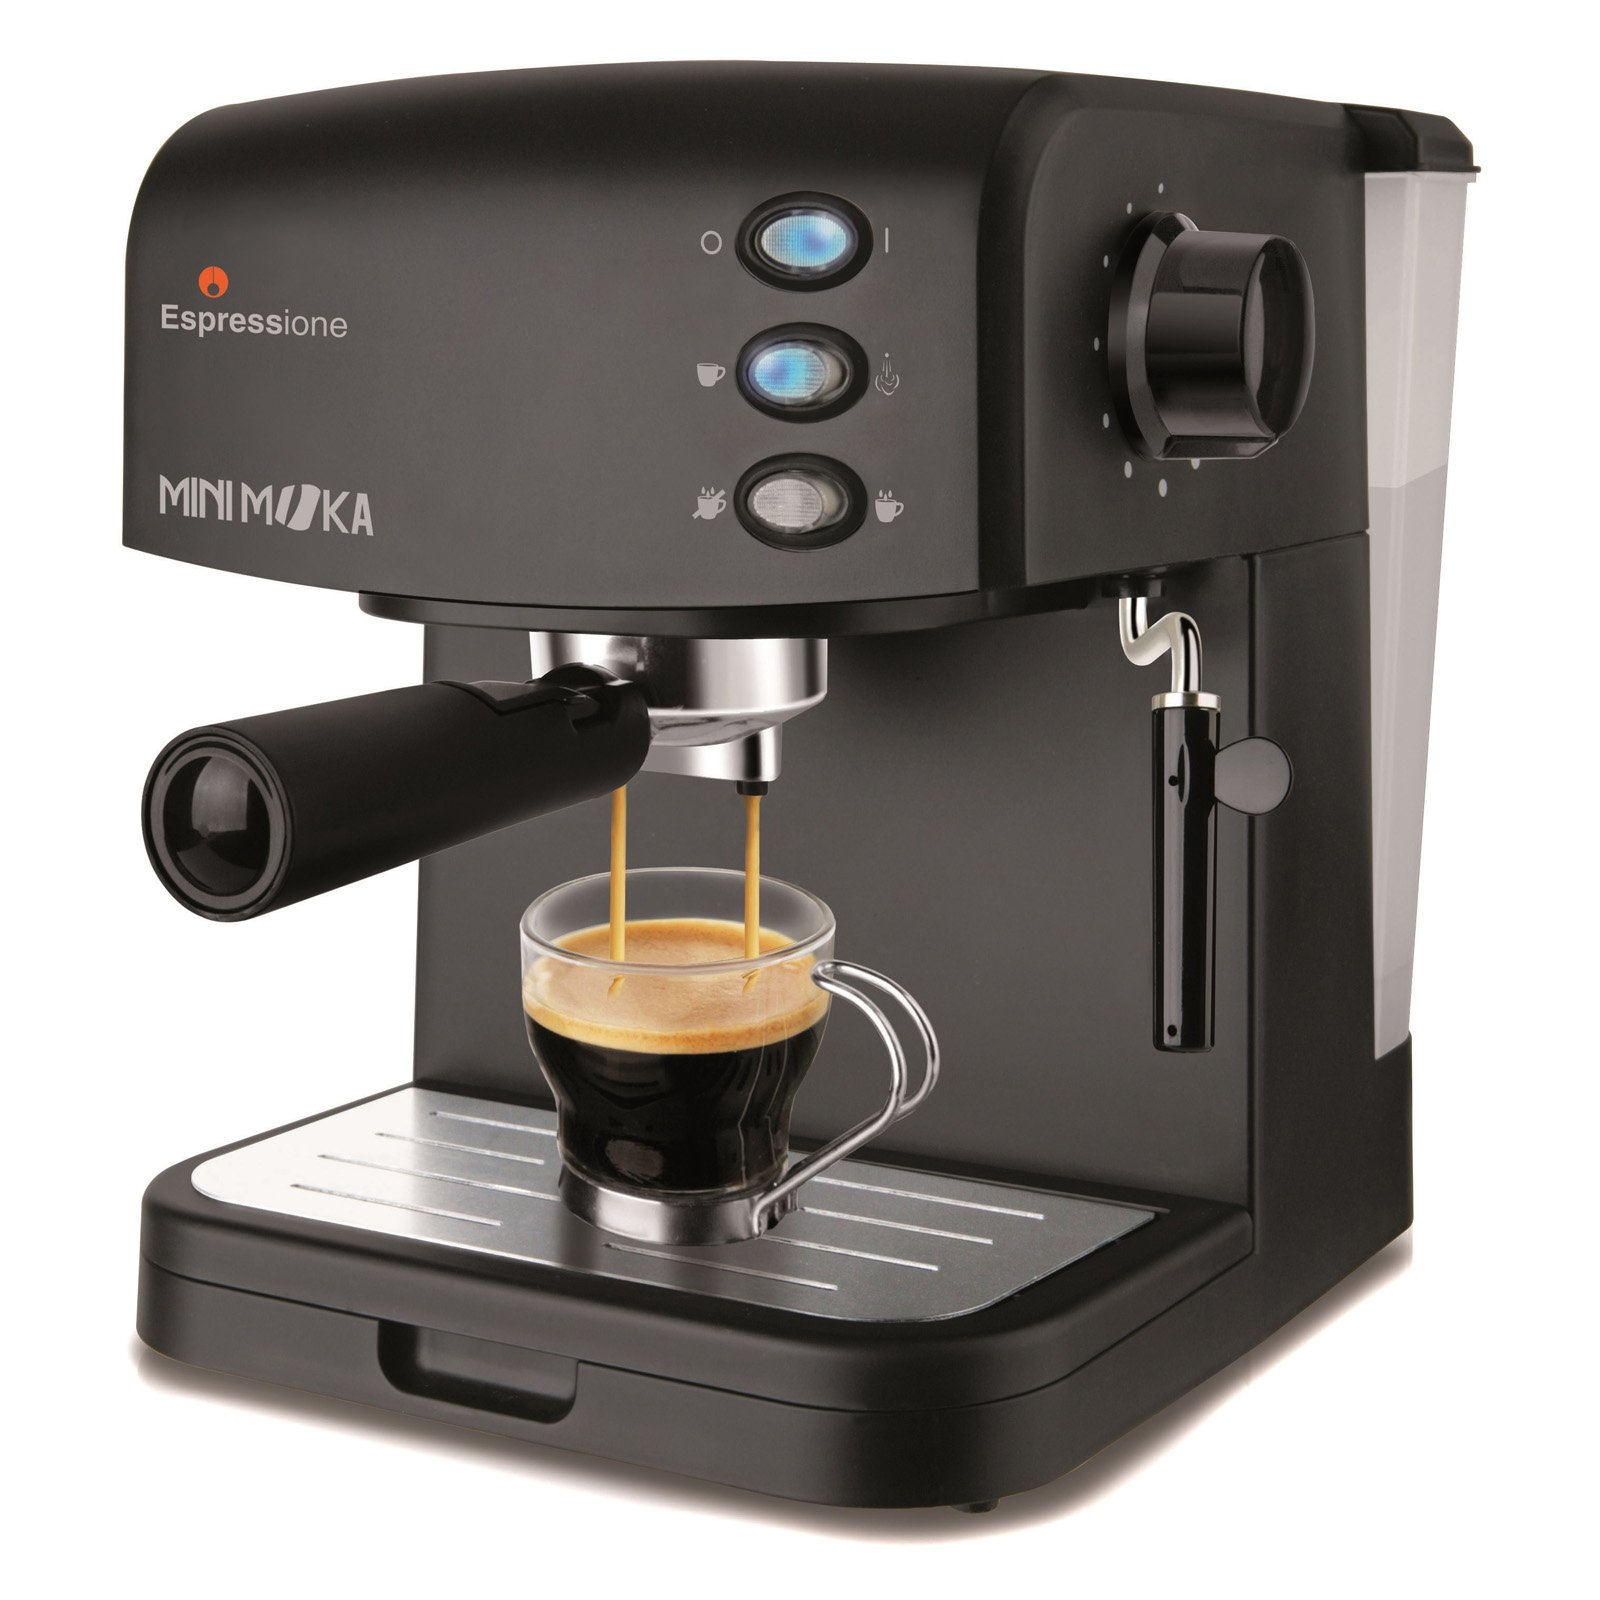 Click here to buy Espressione CM-1695 Minimoka Espresso Machine.